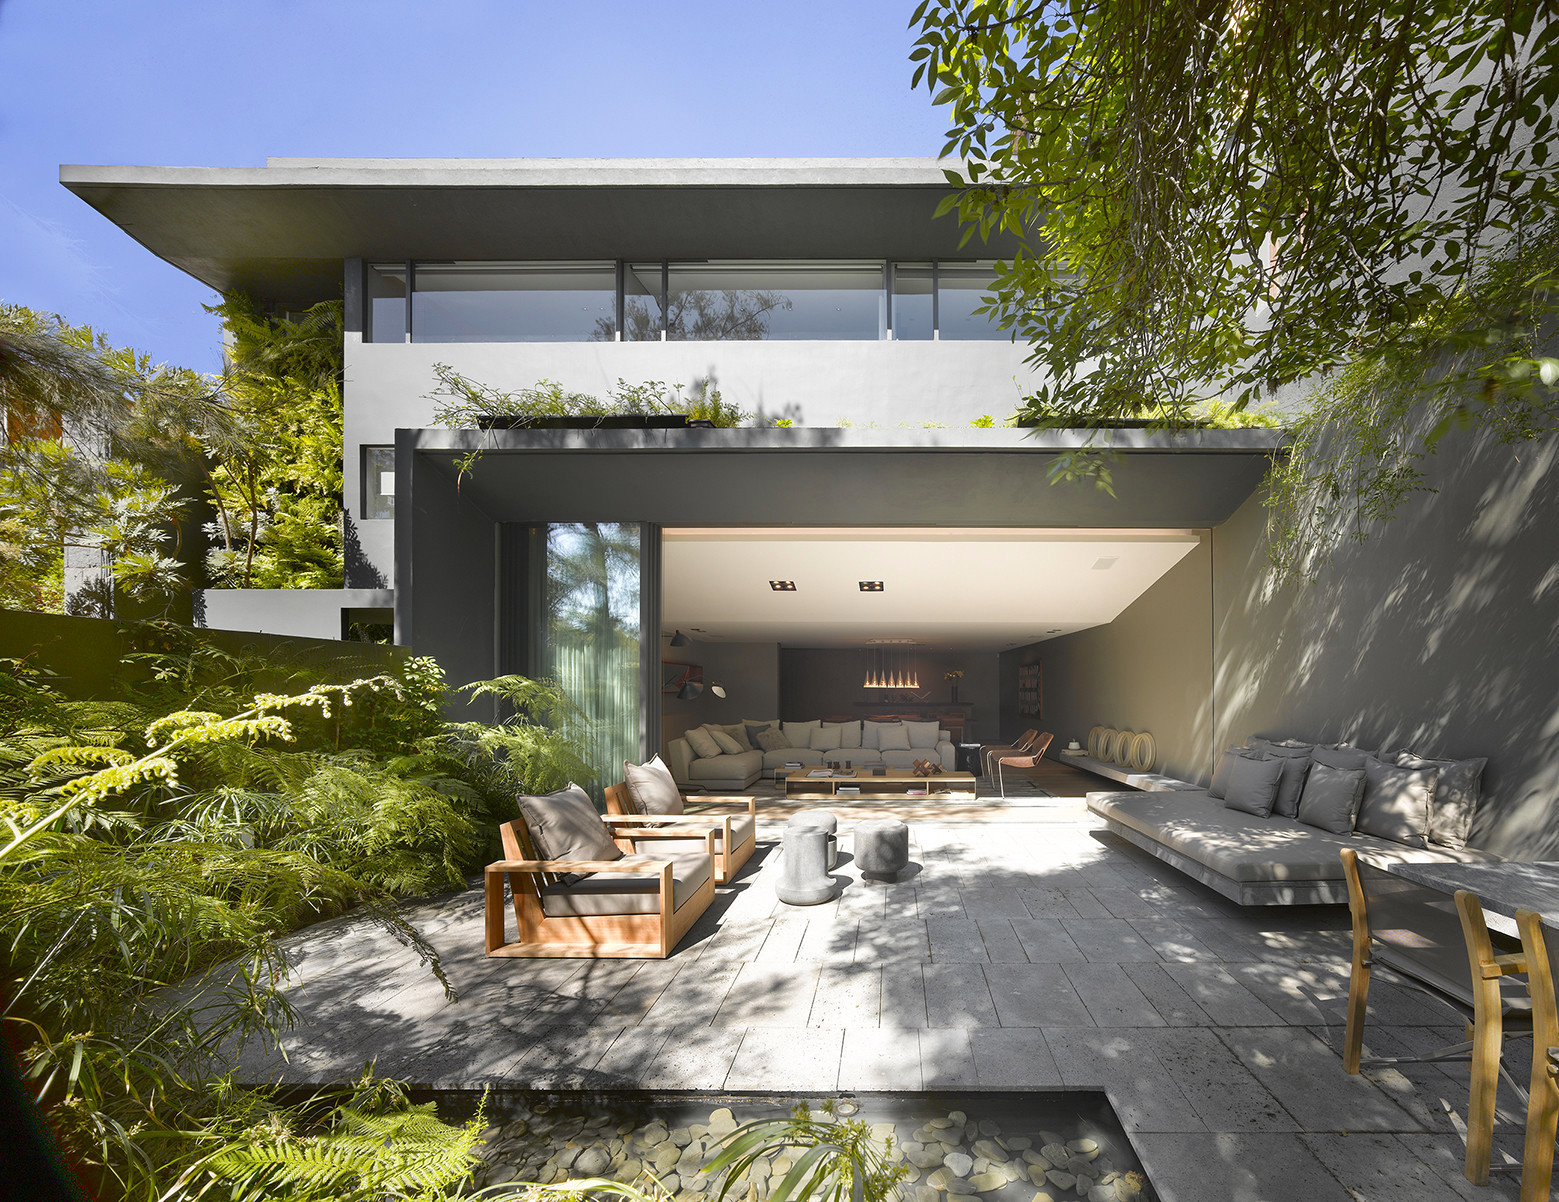 Green-house-mexico-just3ds.com-8